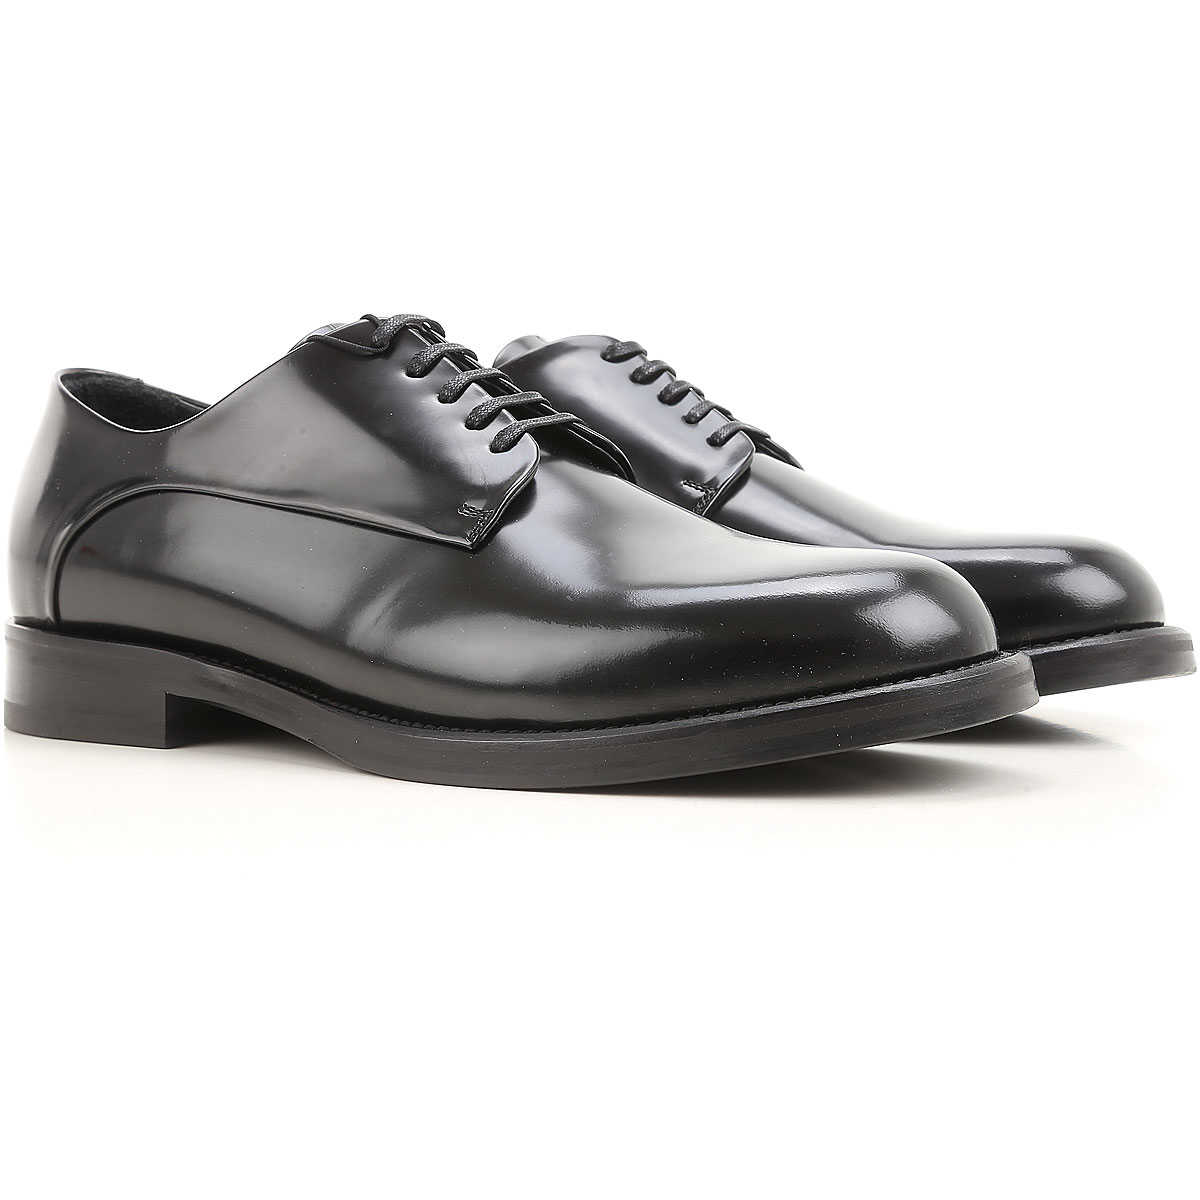 Emporio Armani Lace Up Shoes for Men Oxfords Derbies and Brogues On Sale in Outlet USA - GOOFASH